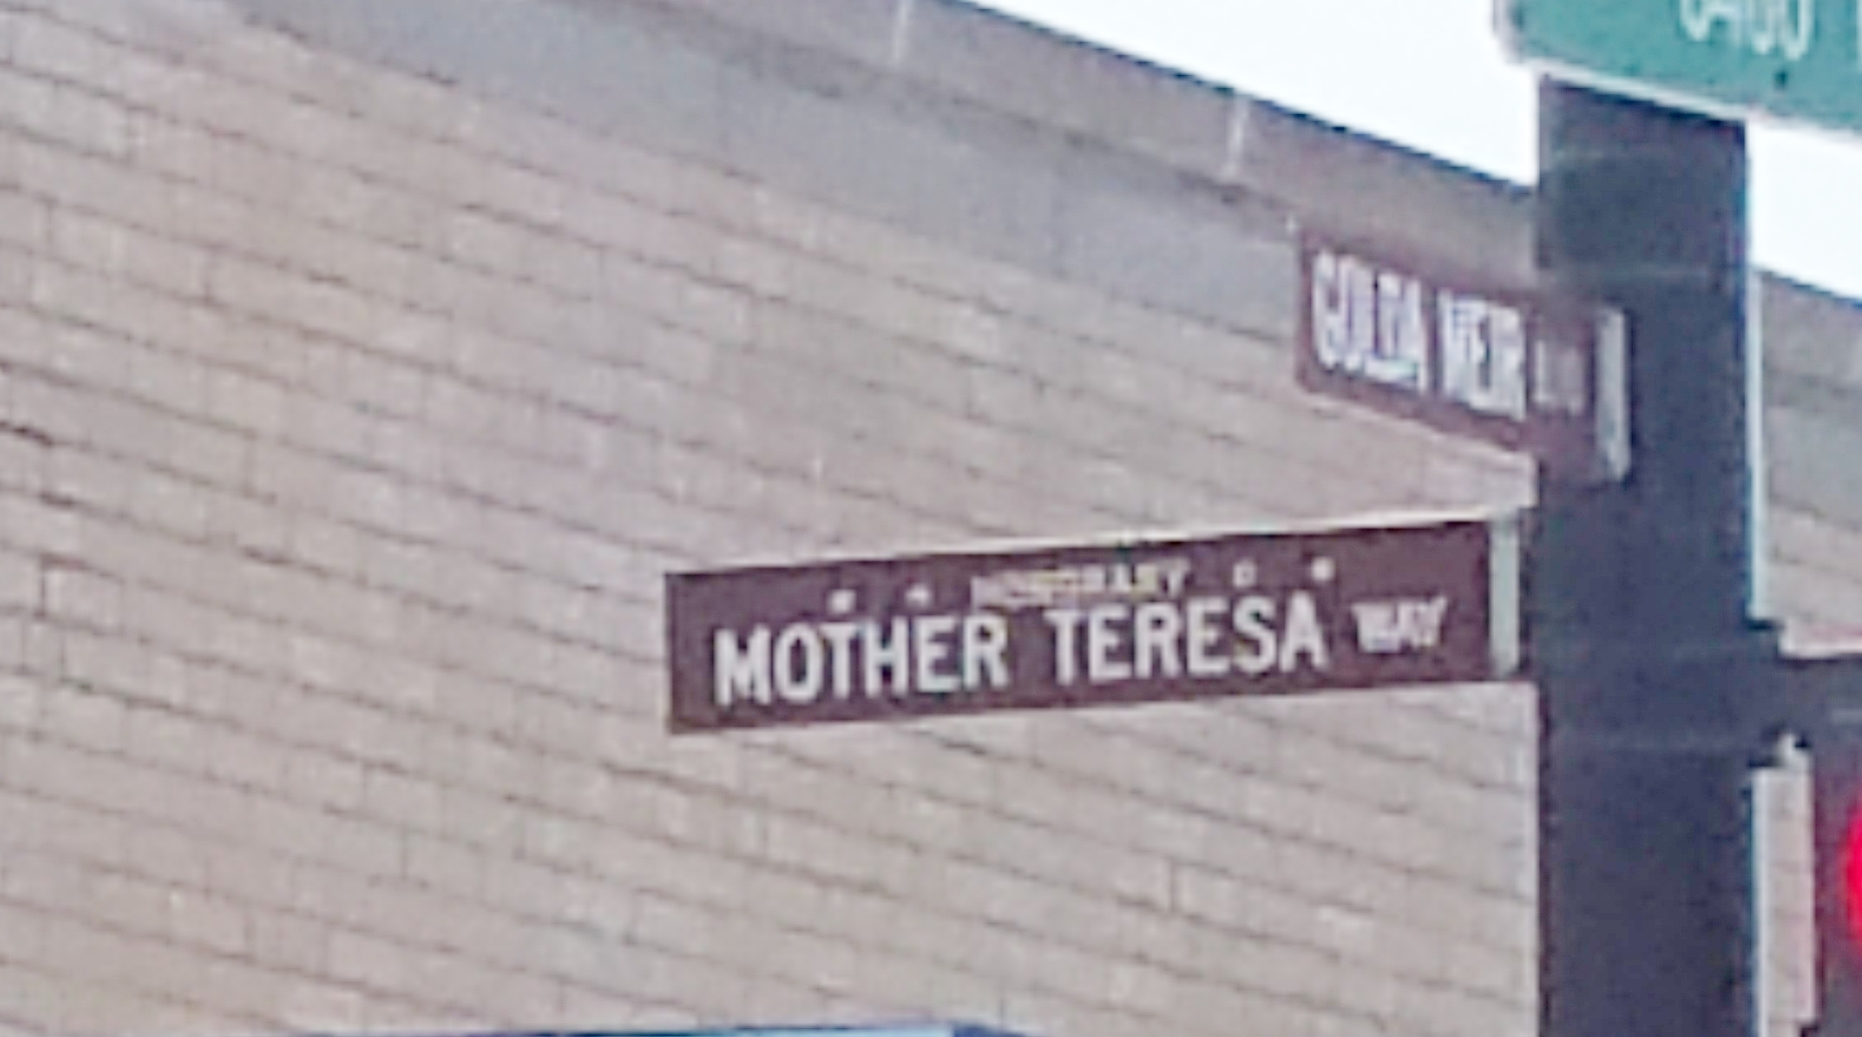 Mother Teresa and Golda Mier Chicago street signs